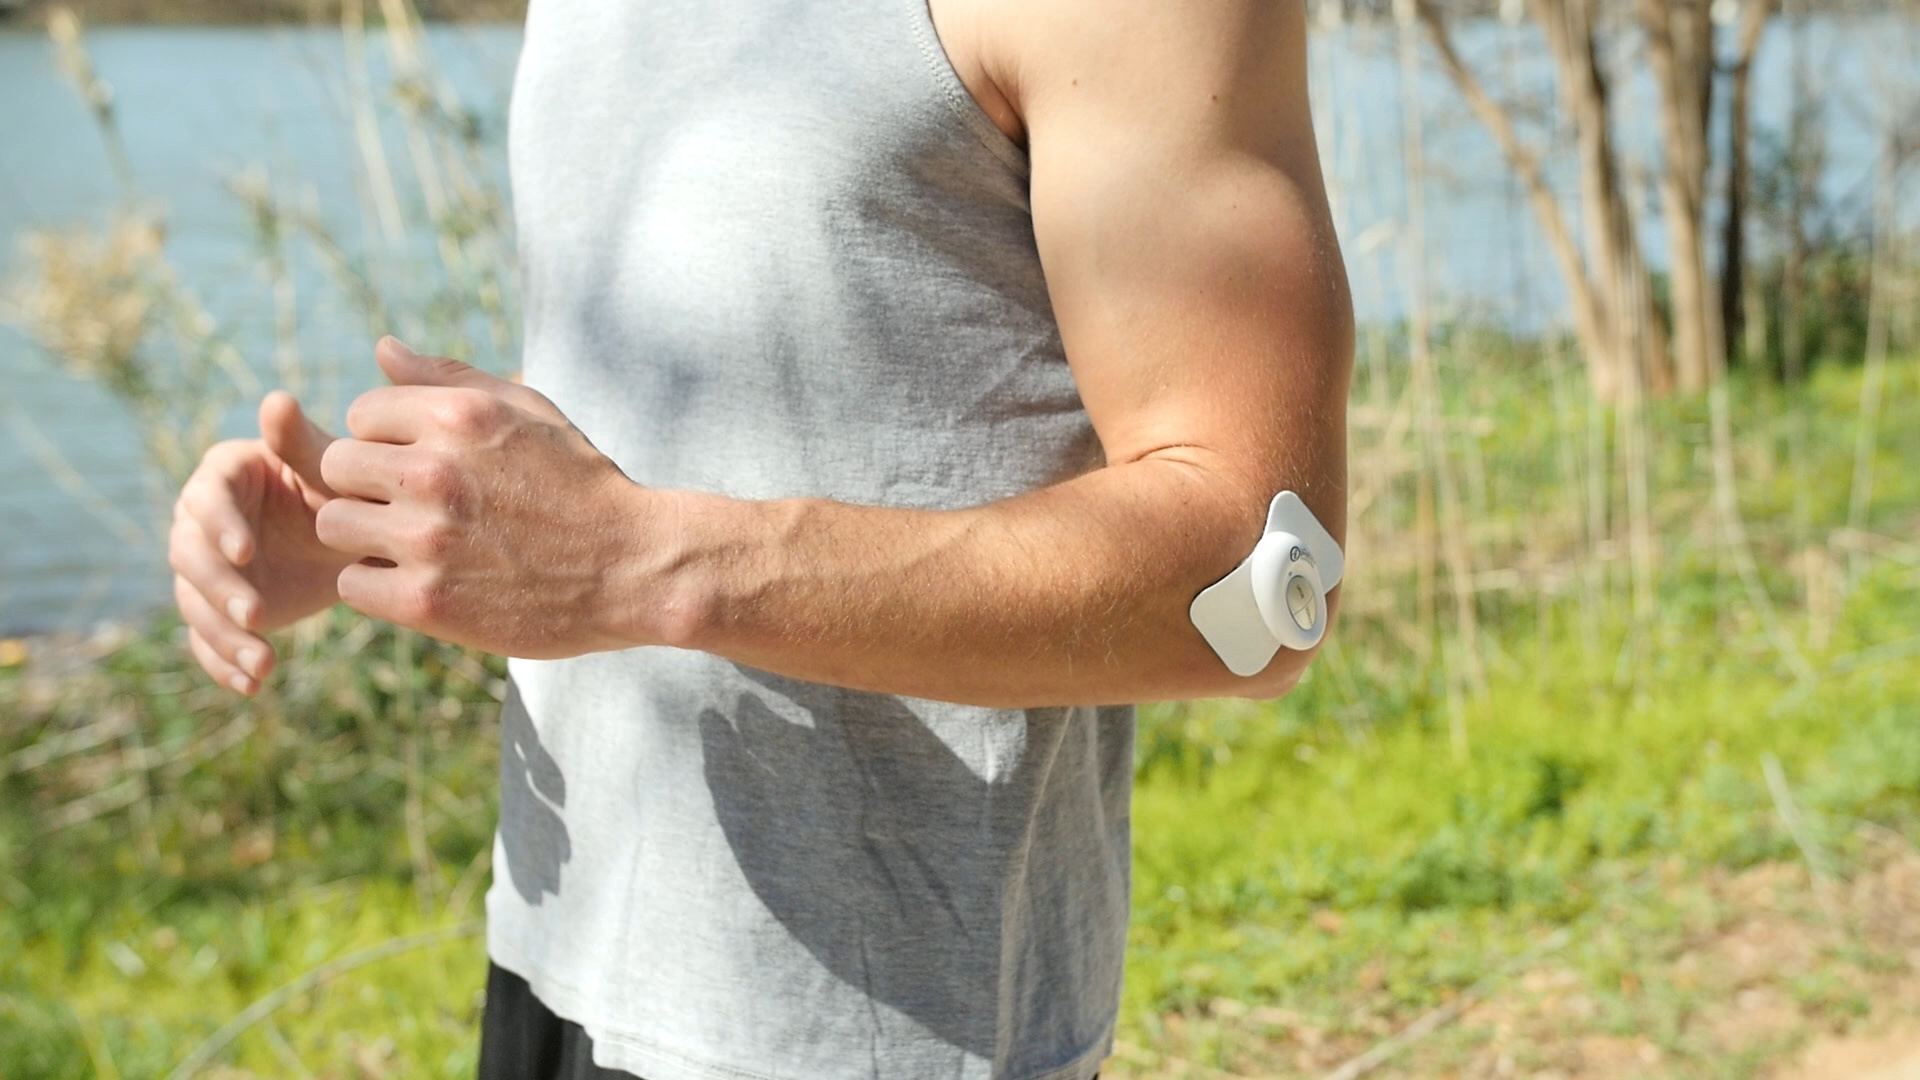 TENS Therapy for Tennis Elbow